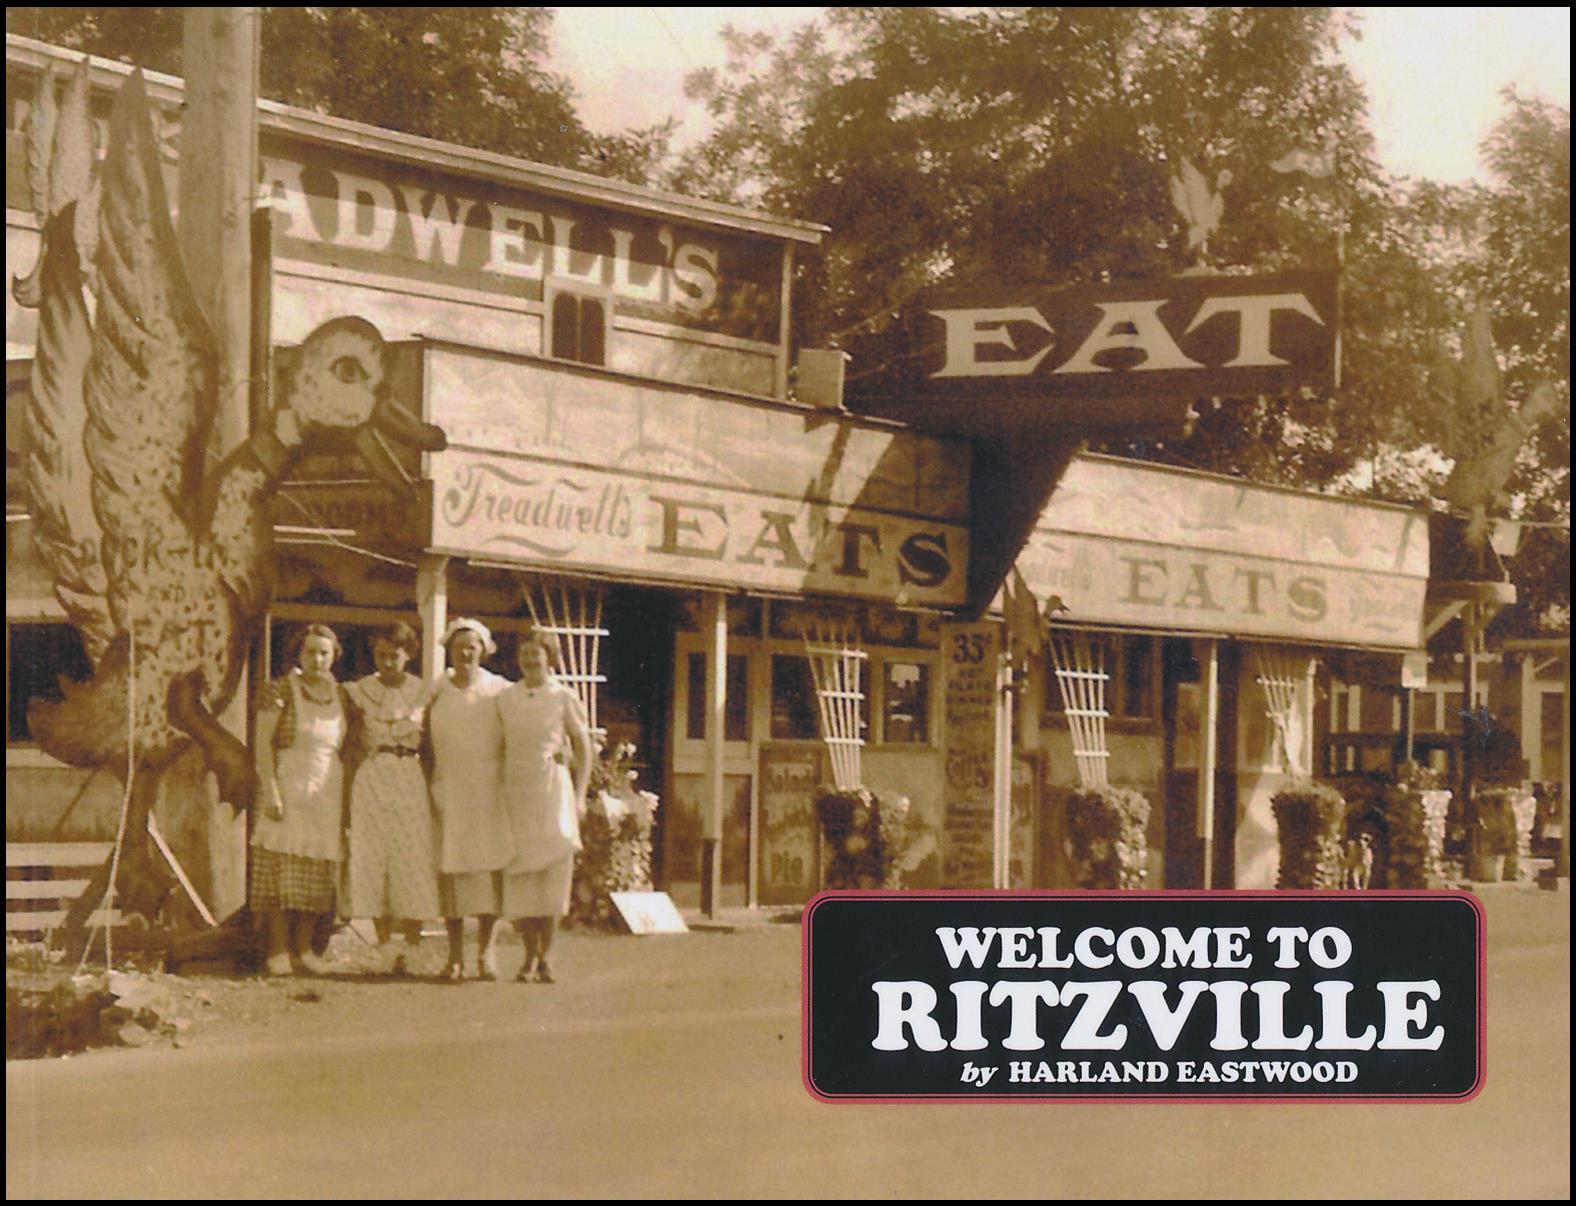 WELCOME TO RITZVILLE